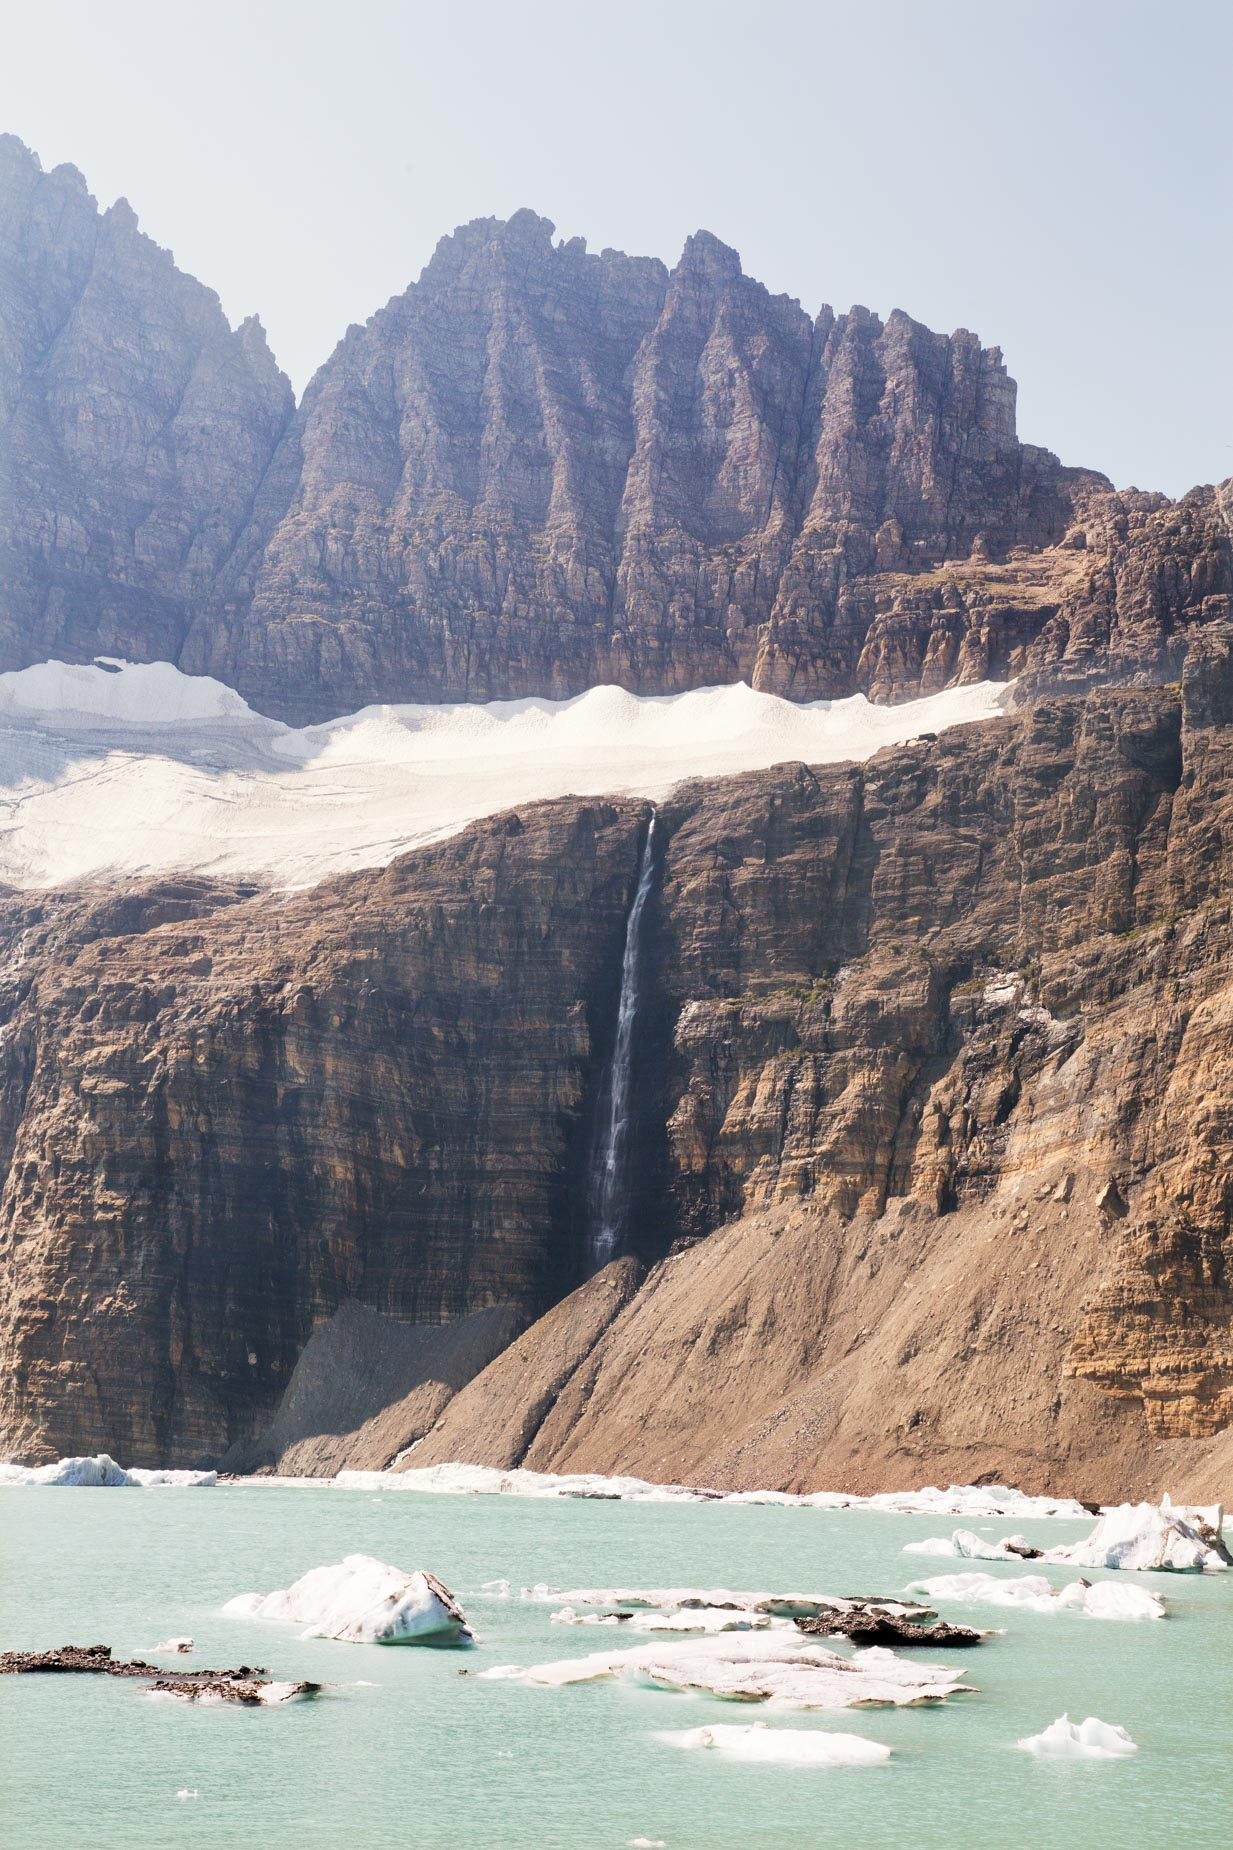 alex_aristei_Glacier_005